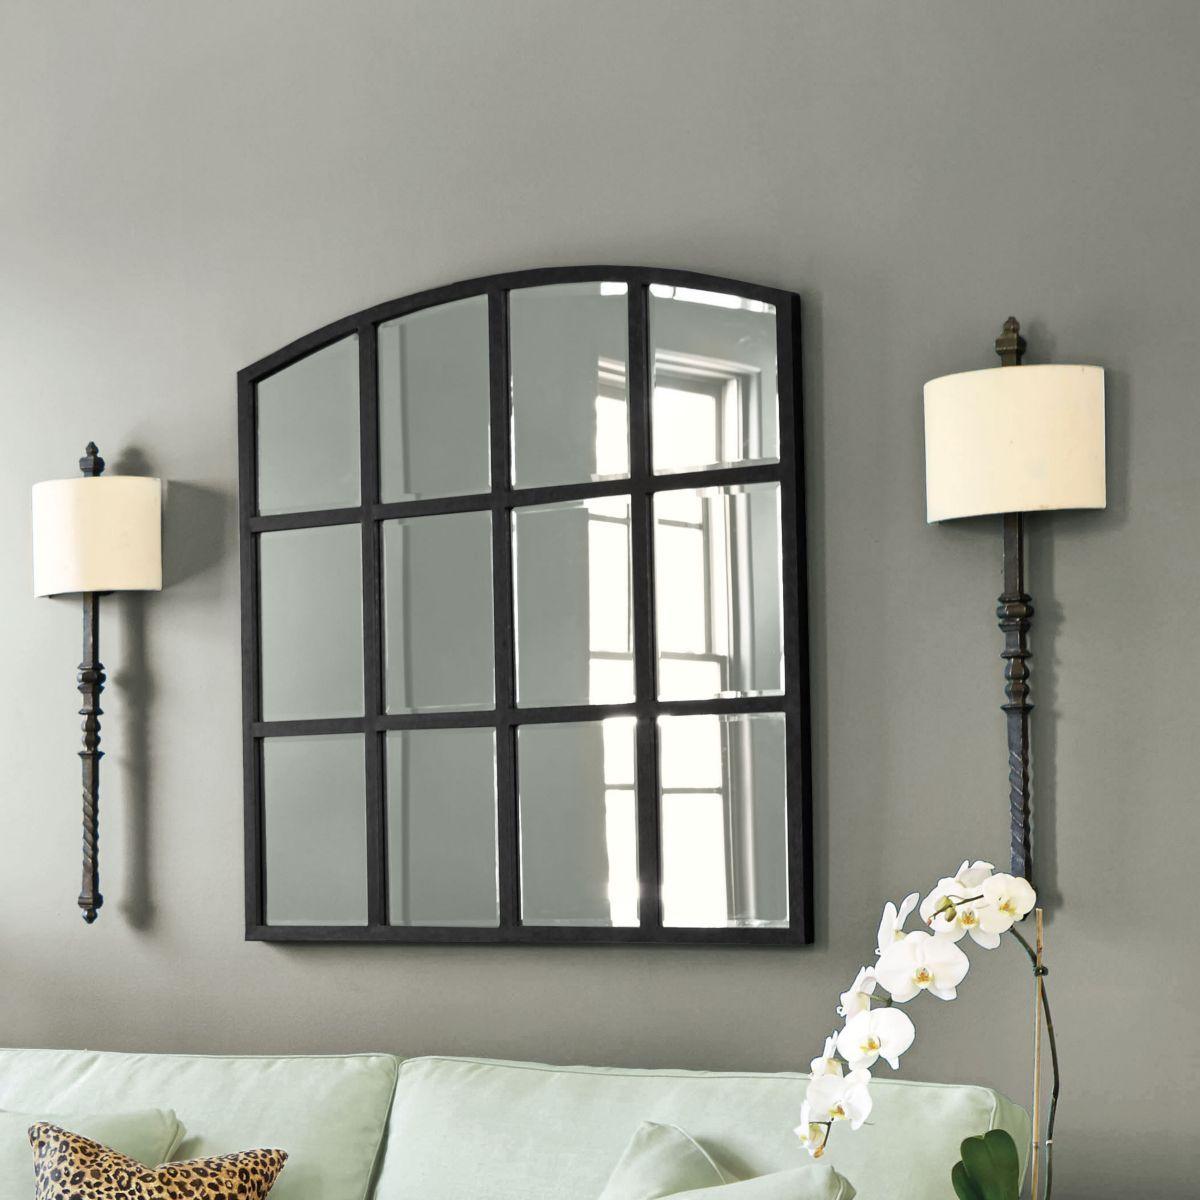 framed wall white fine decorative for mirrors room decor large genius mirror living art most